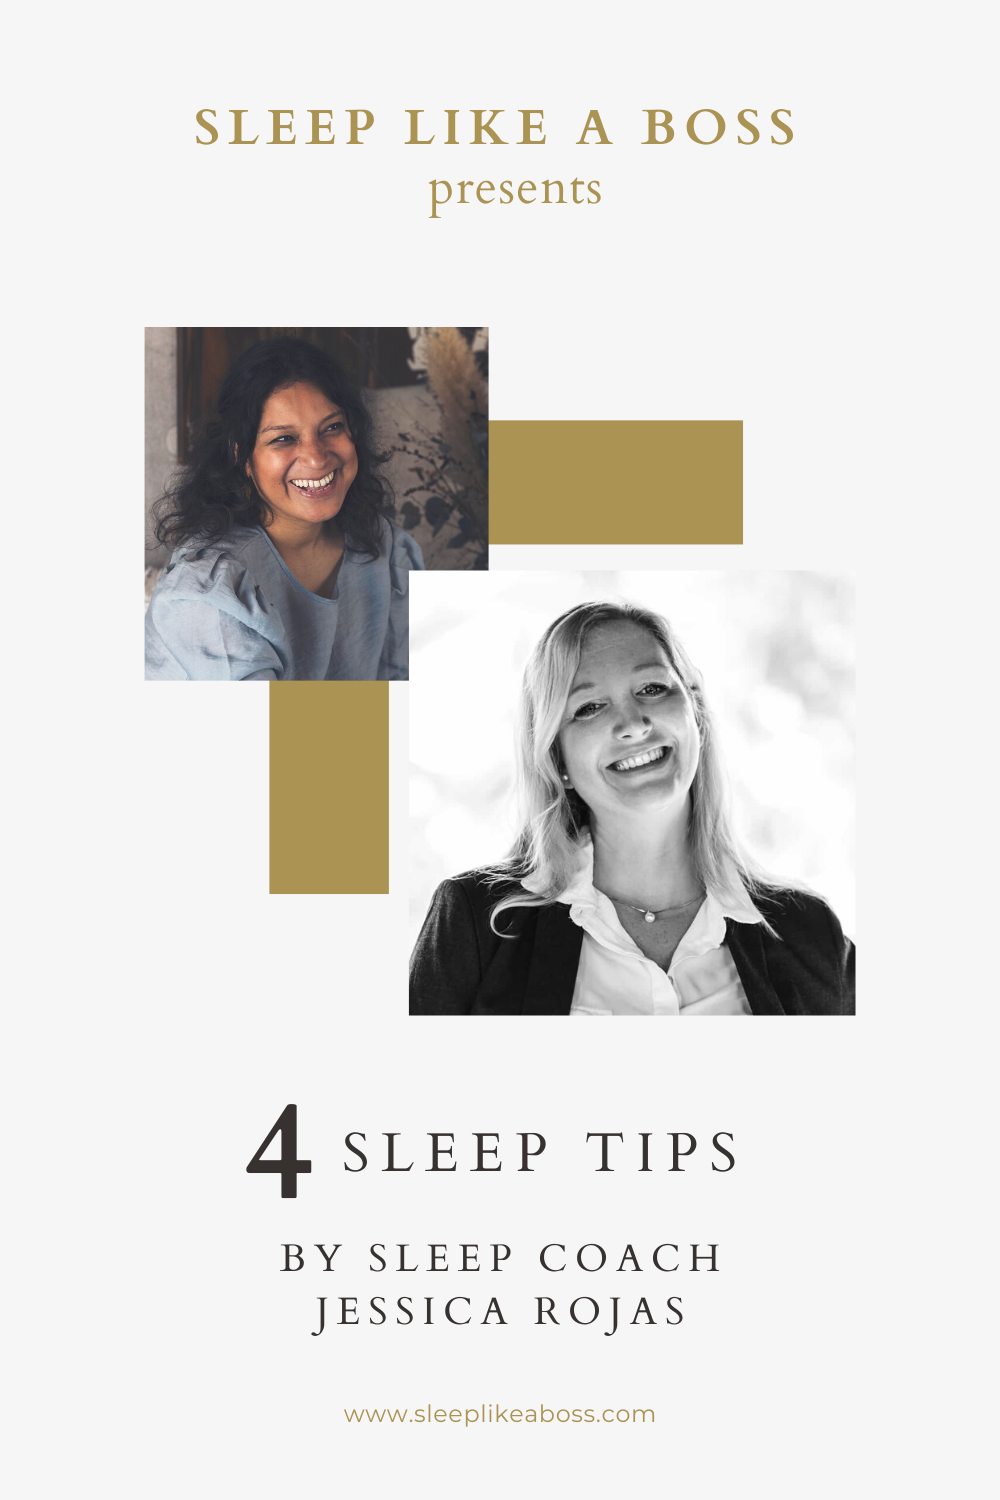 4 Sleep tips by sleep coach Jessica Rojas is the first of seven interviews with our Sleep Like A Boss sleep coaches and Christine Hansen.